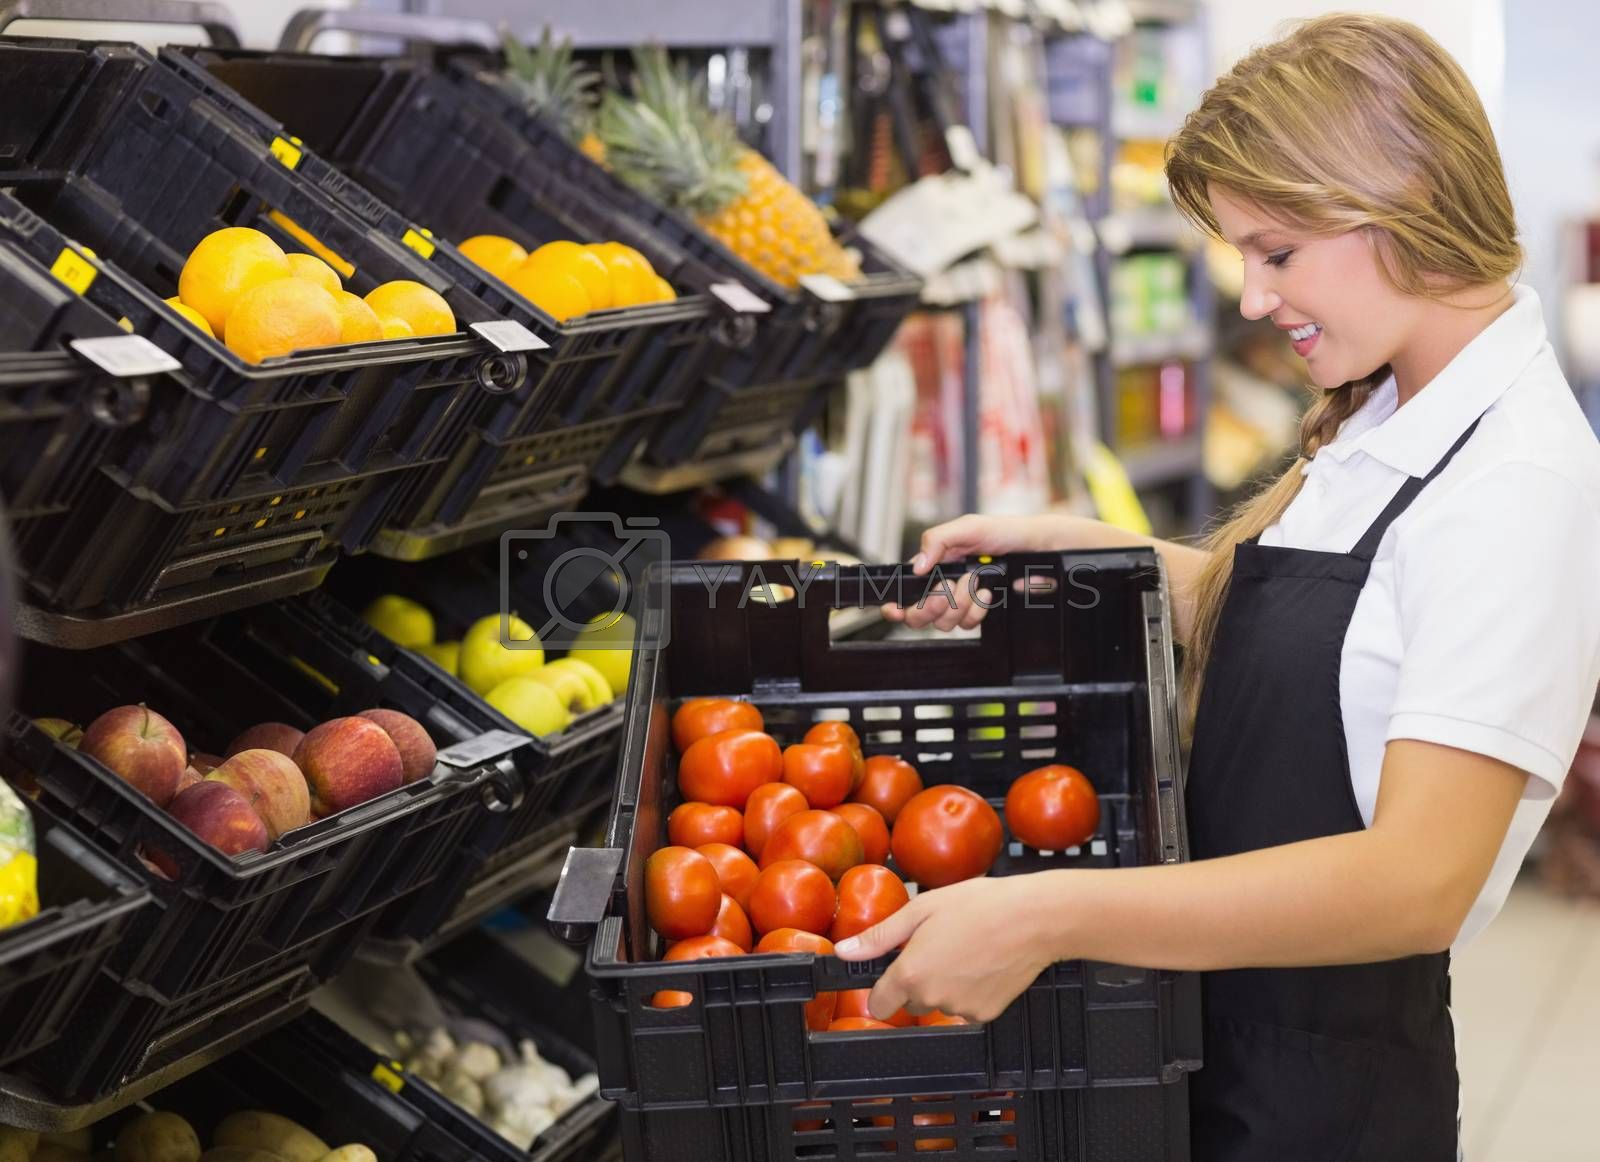 Royalty free image of Smiling staff woman holding a box with fresh vegetables by Wavebreakmedia